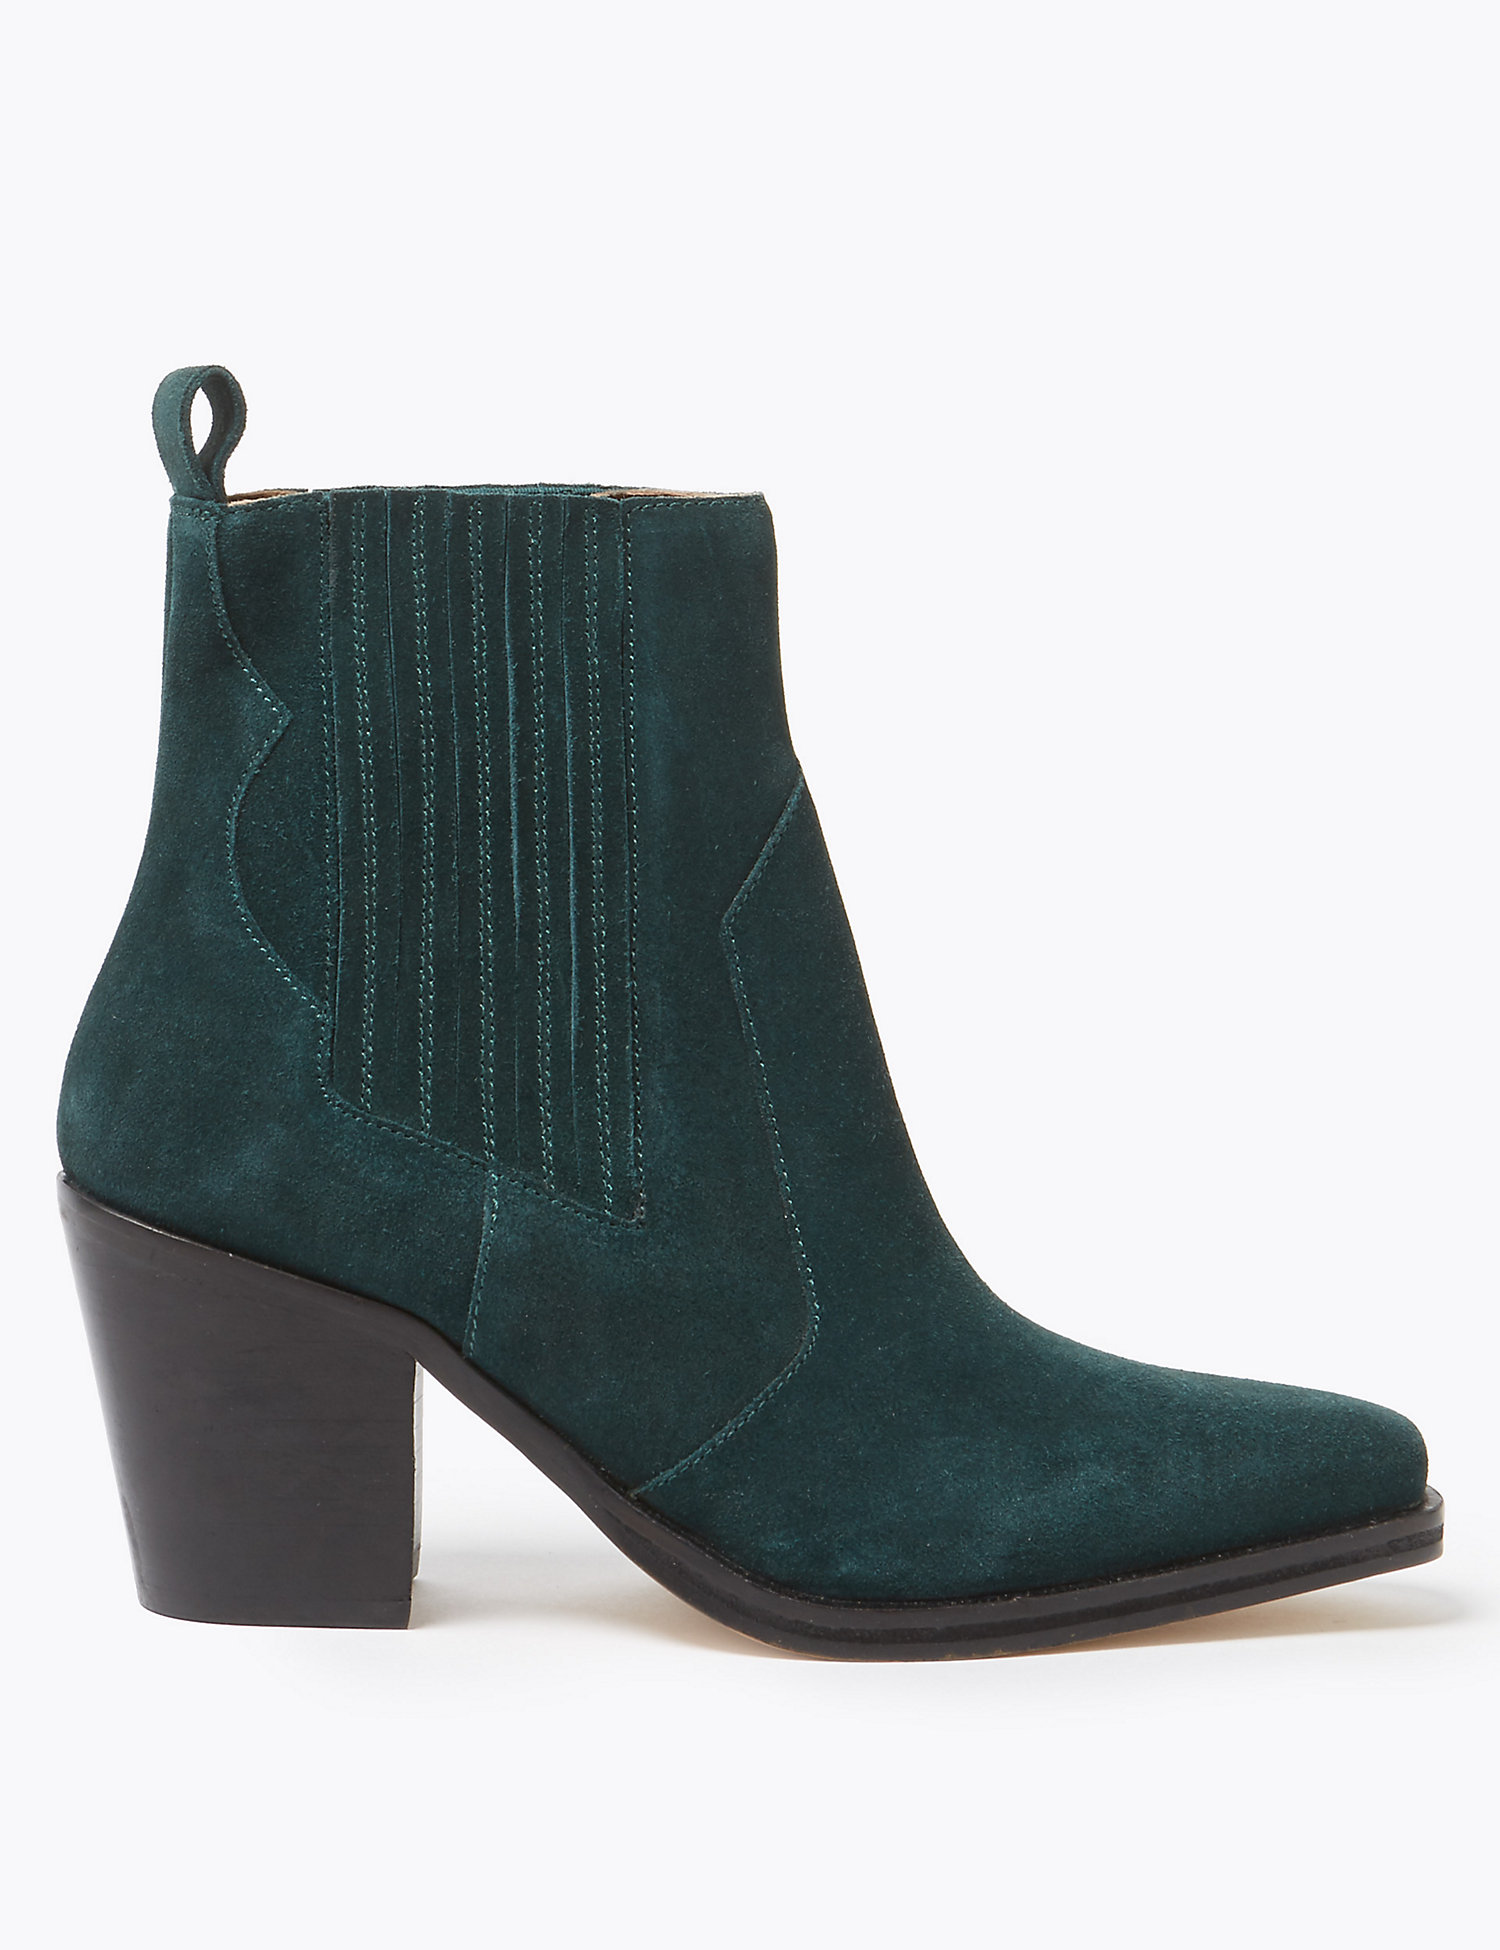 M&S Green Suede Boots